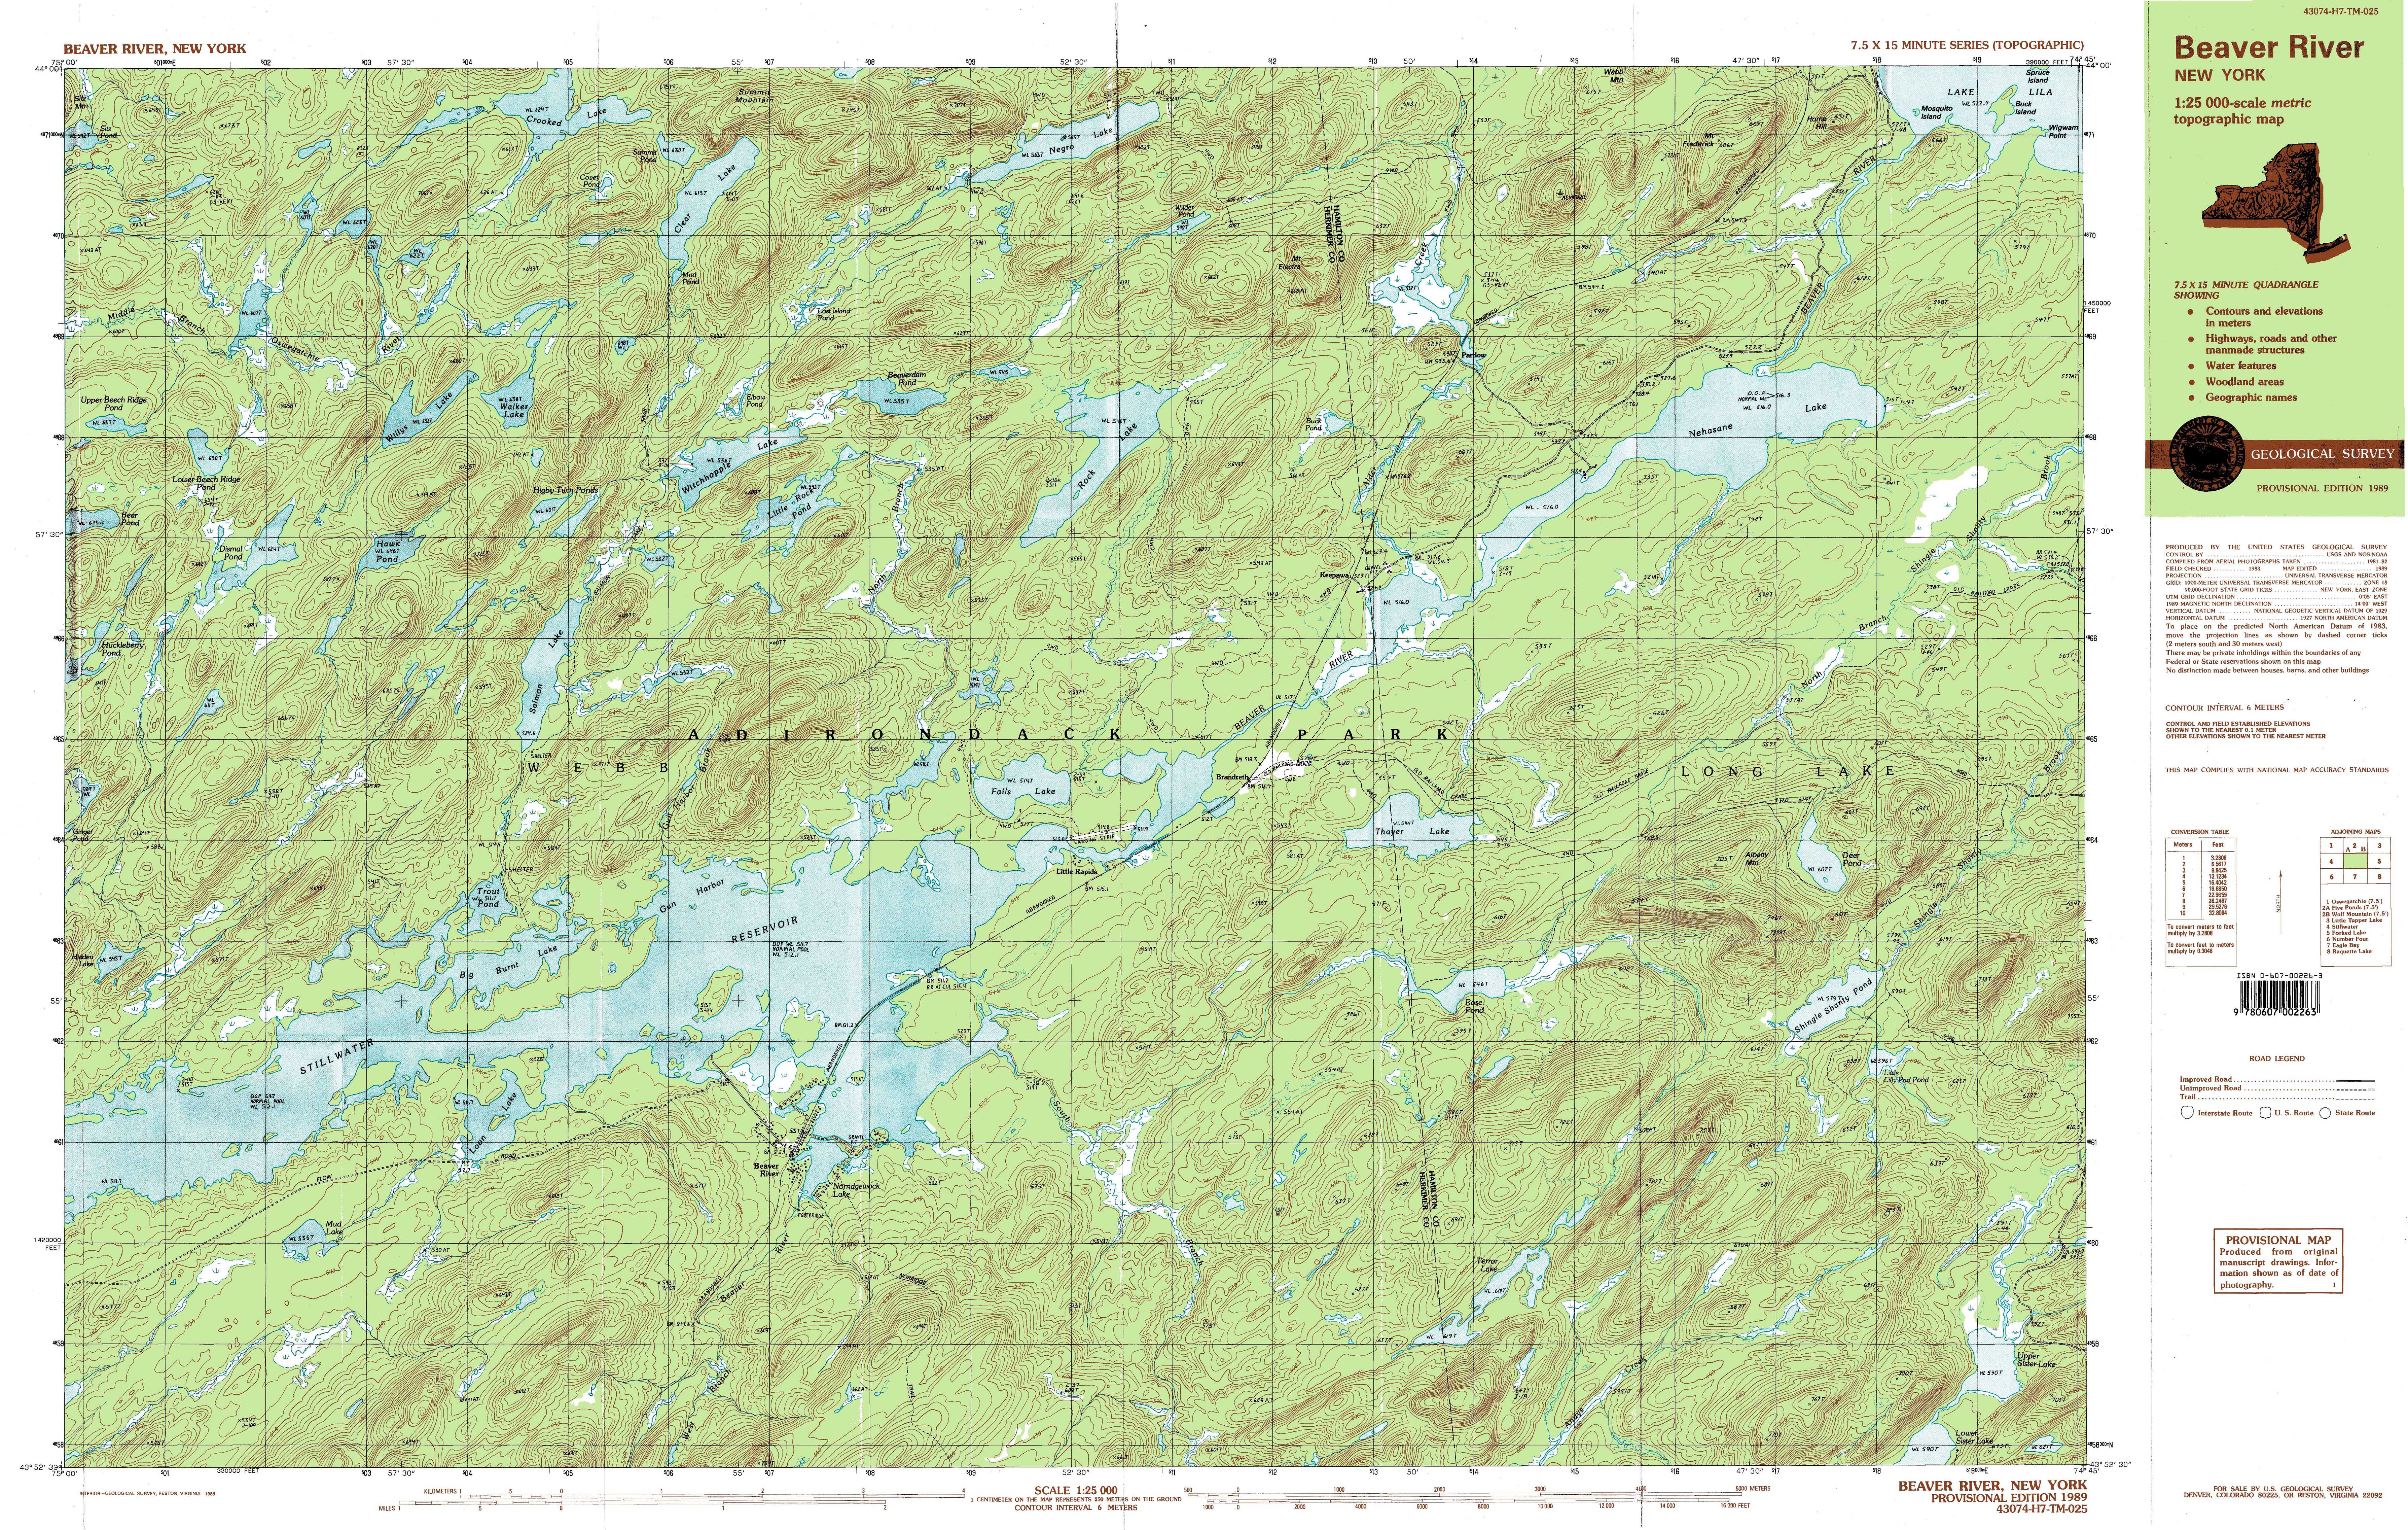 Red River Gorge Topographic Map.New York Topo Maps 7 5 Minute Topographic Maps 1 24 000 Scale